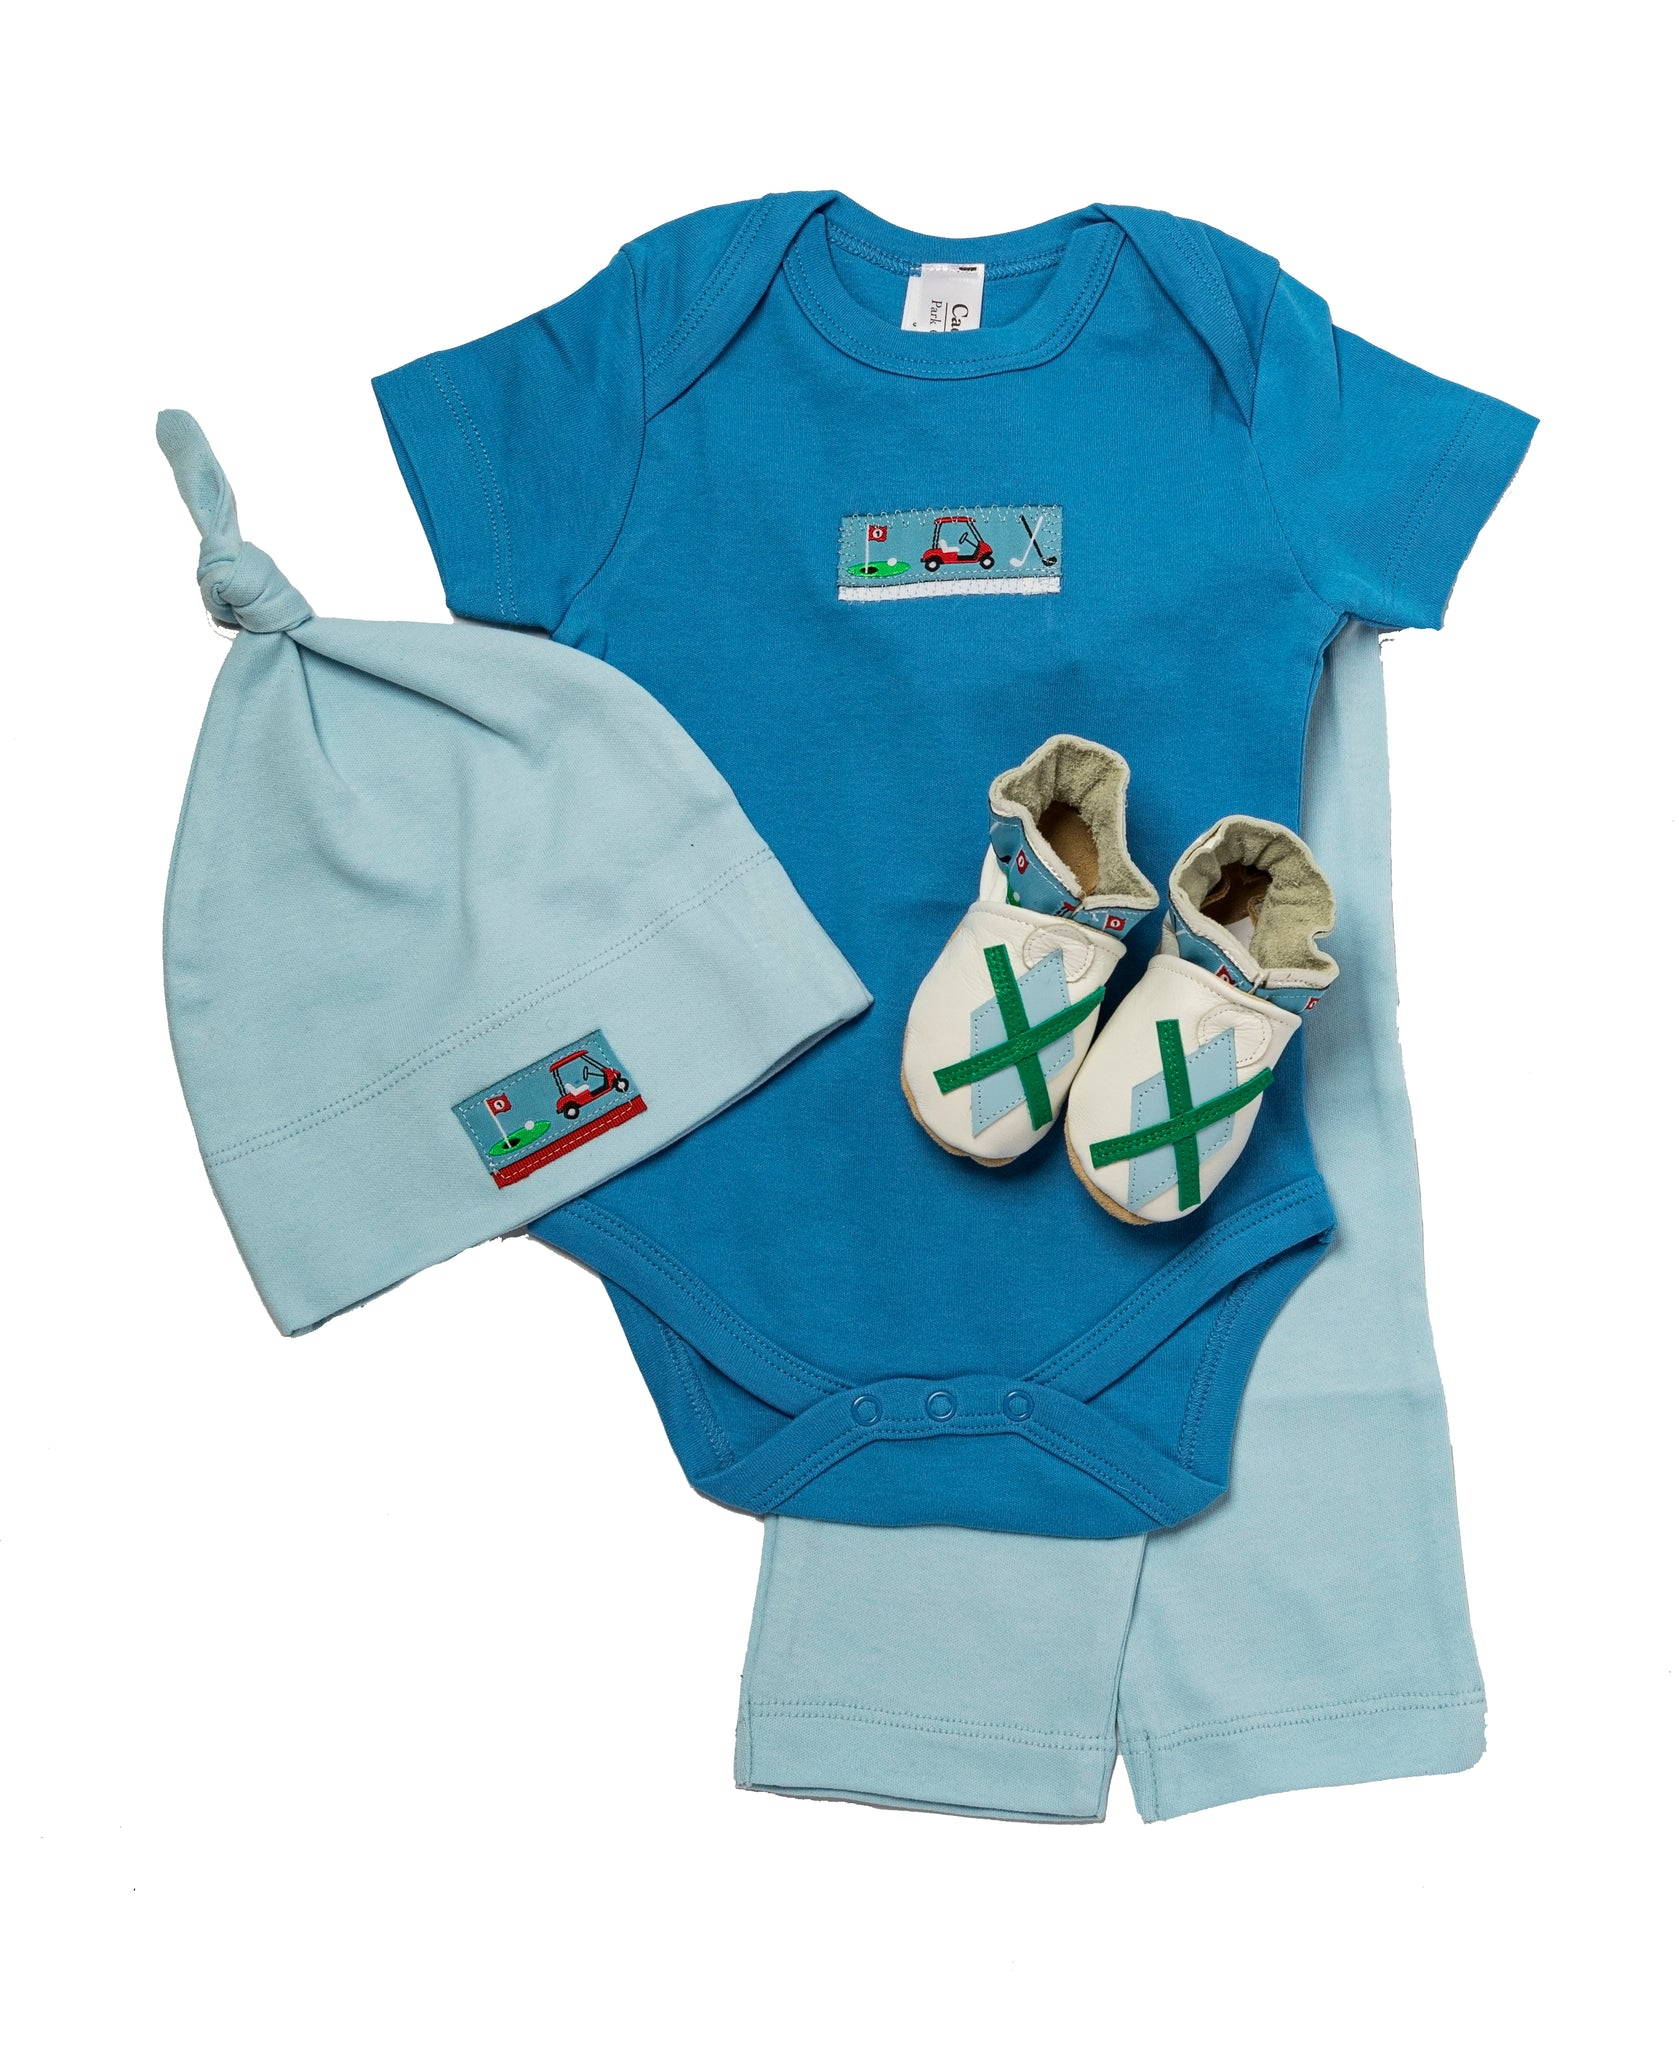 Tee Time Gift Set (blue with matching shoes, short sleeved onesie, pant, hat)